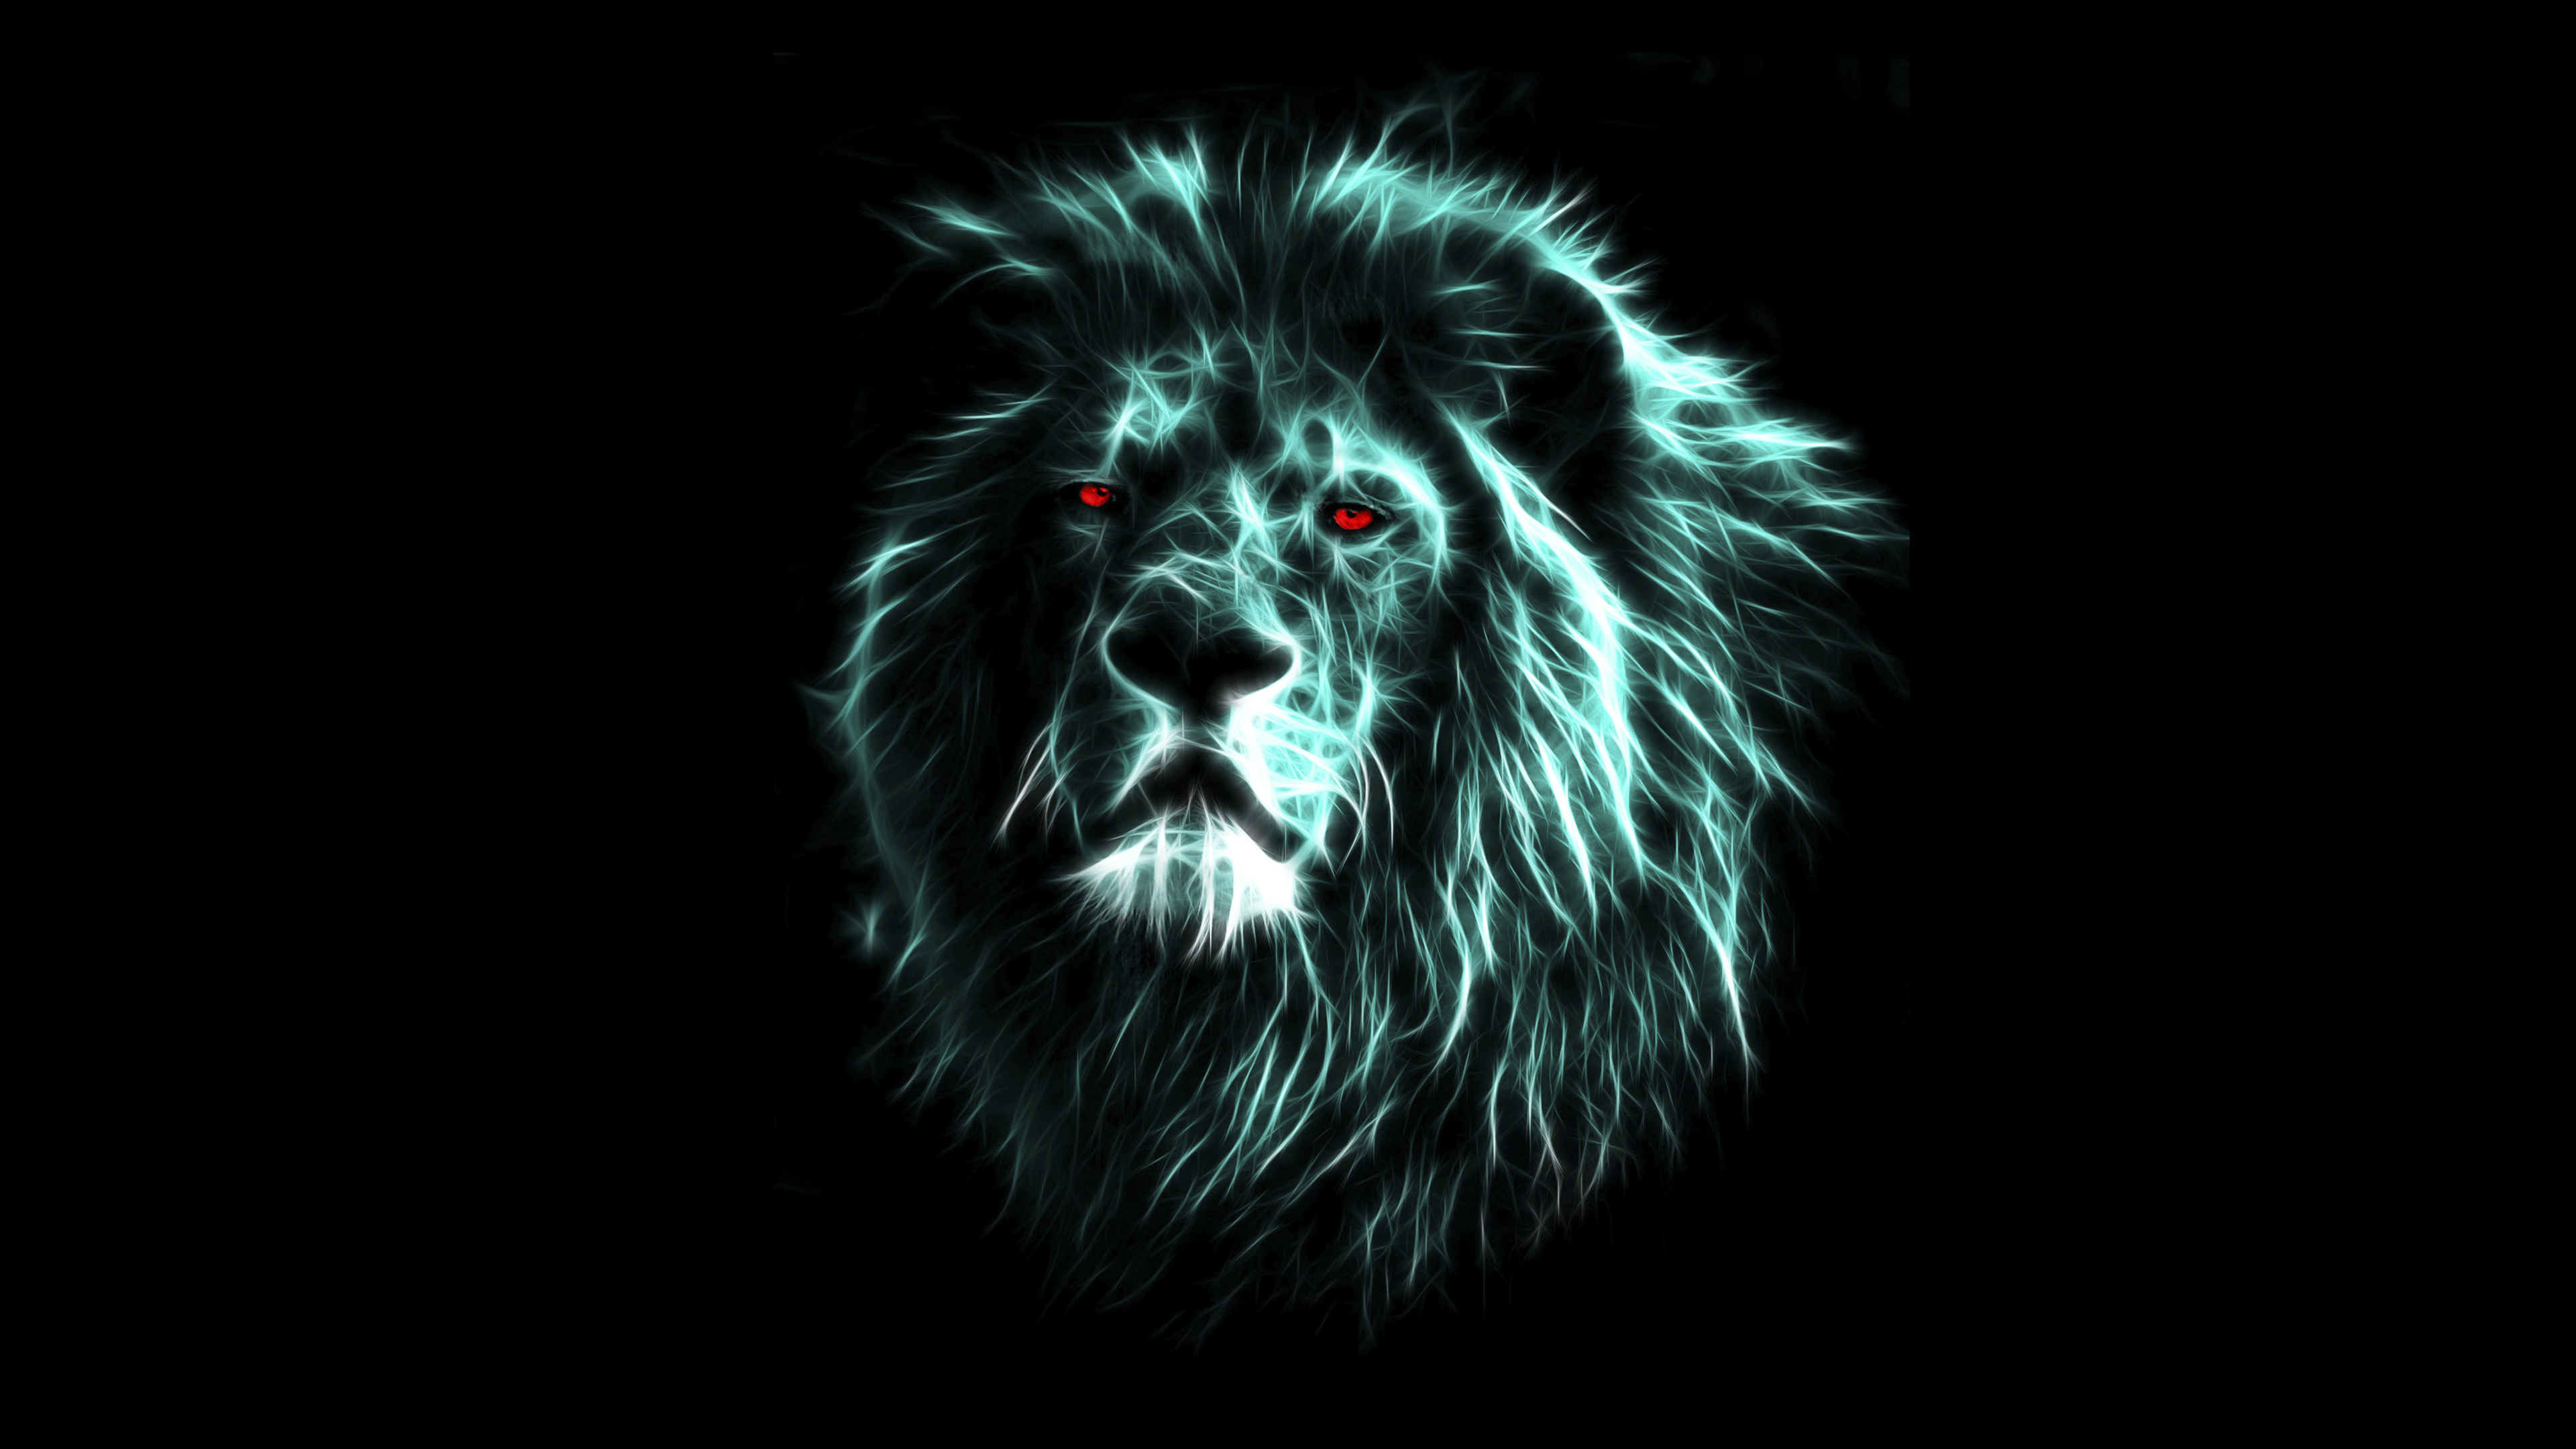 Lion Wallpapers and Background Images   stmednet 3840x2160